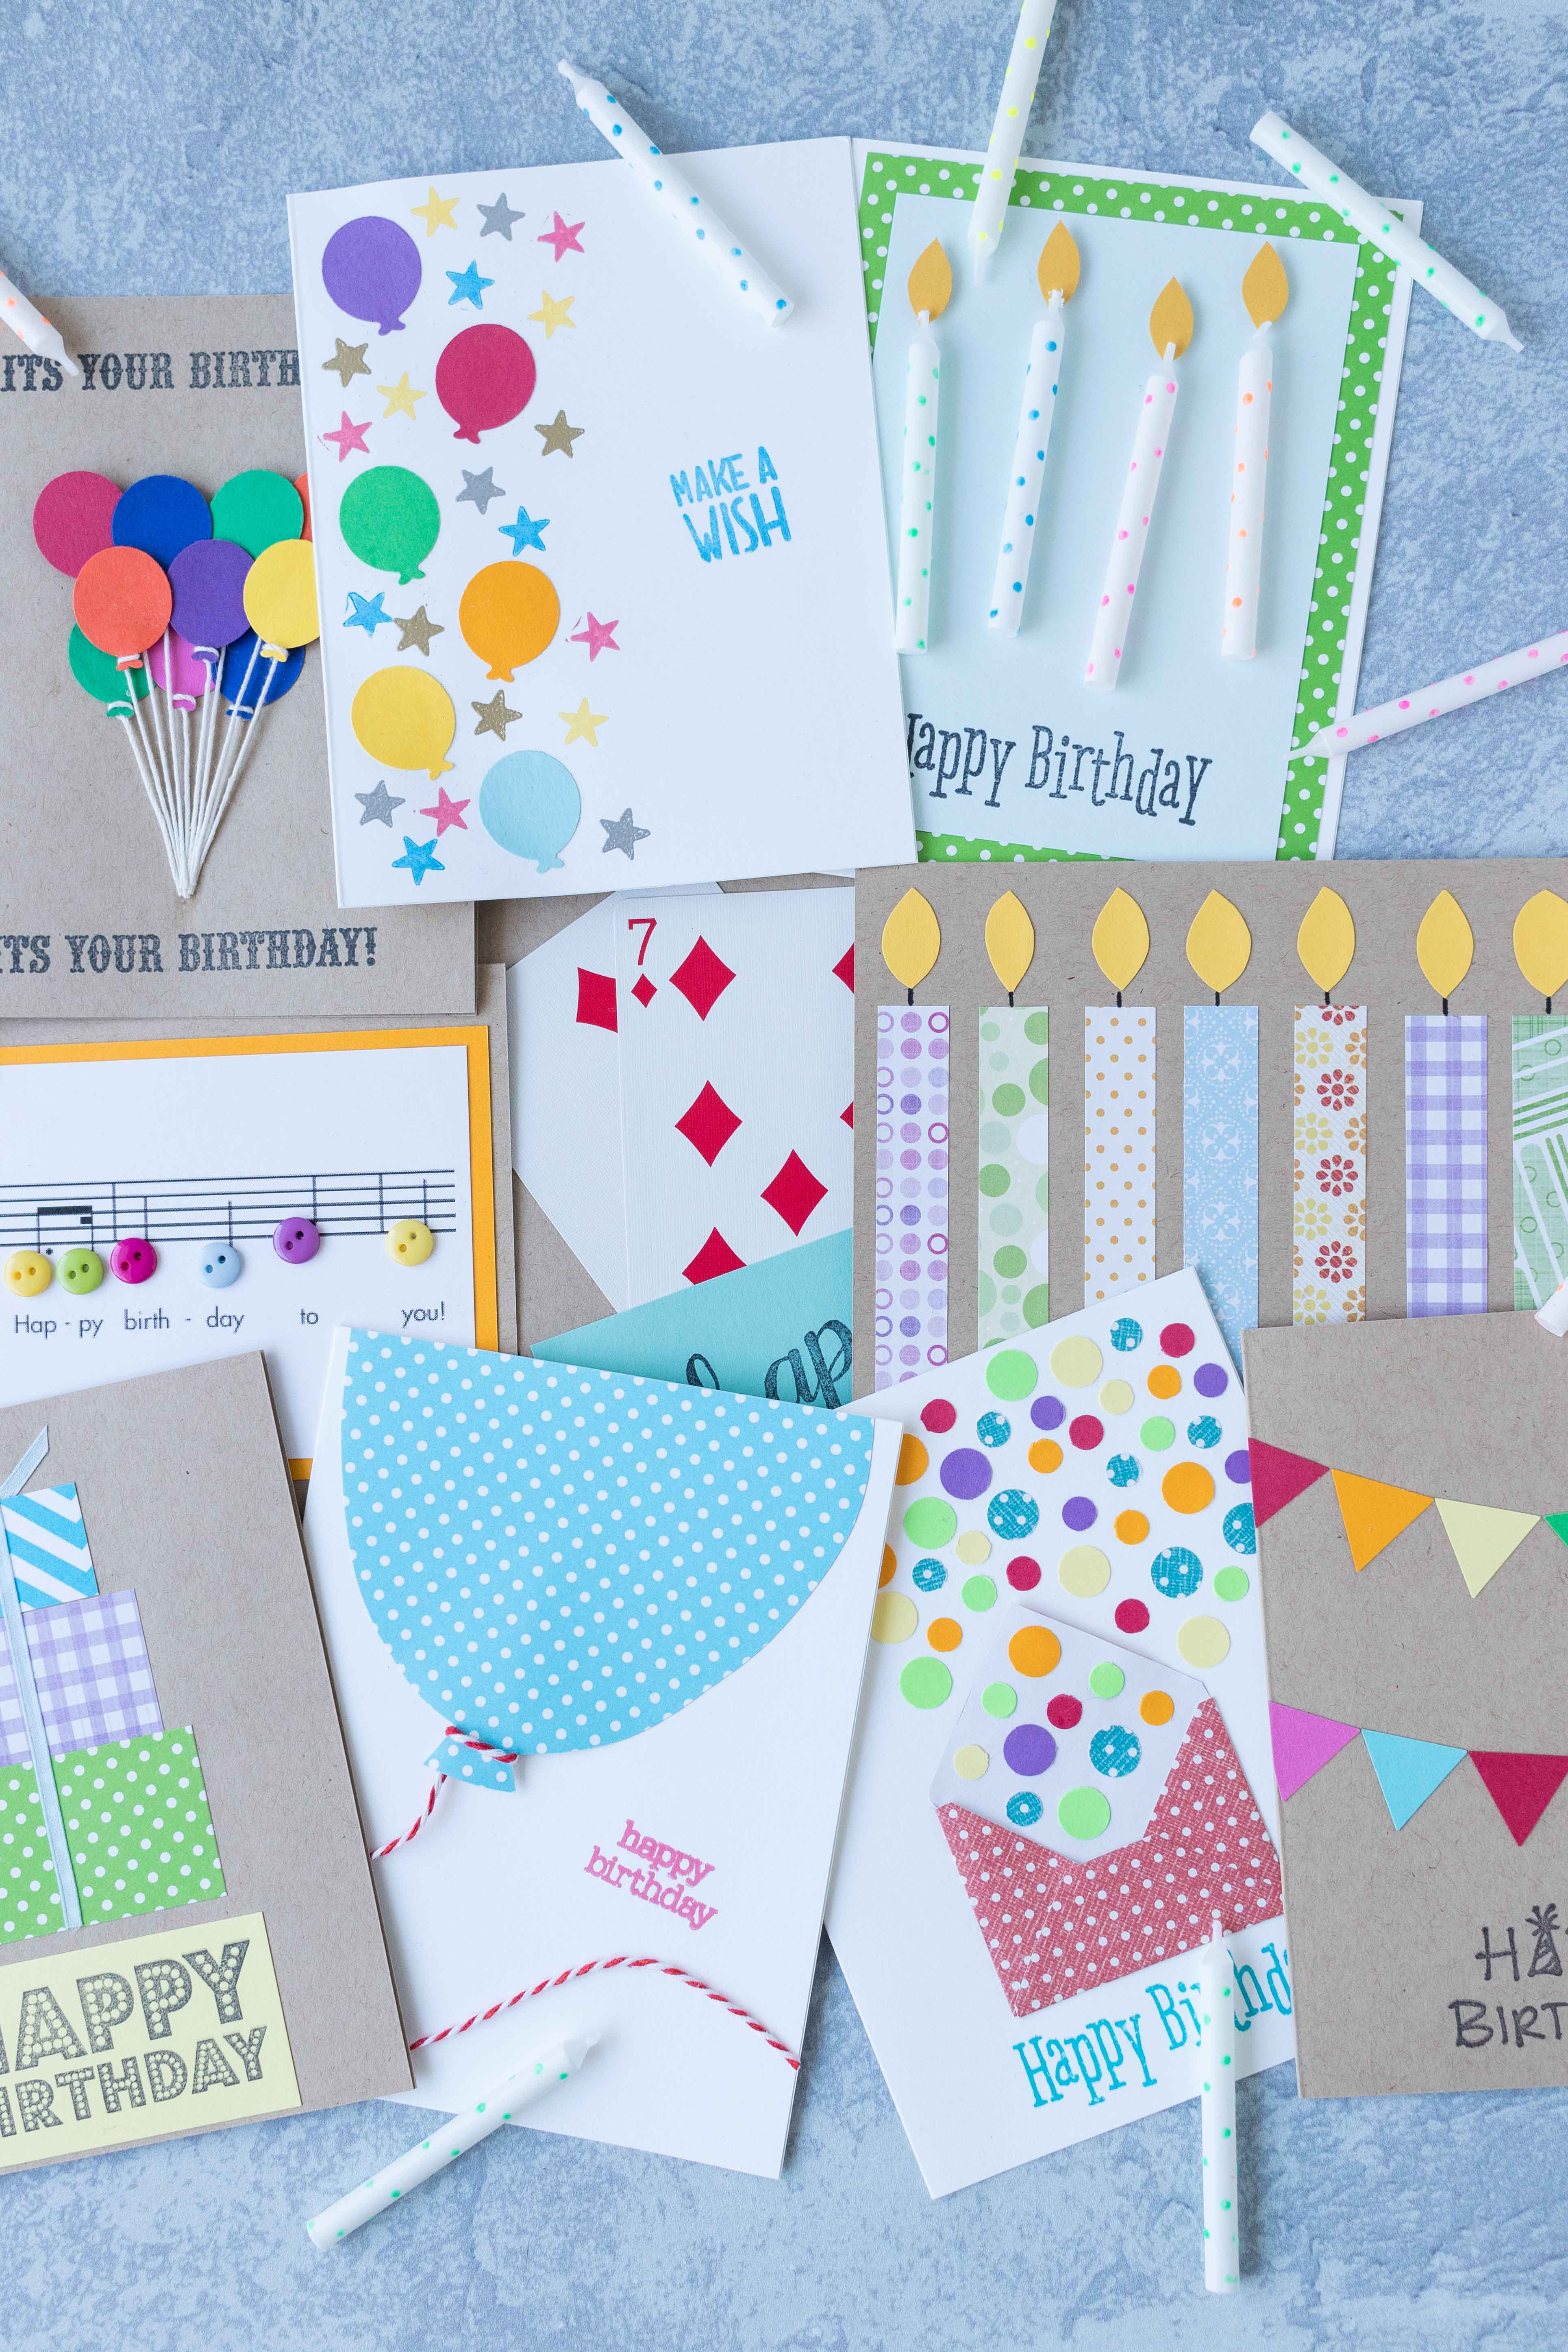 Simple DIY birthday card inspiration to keep you making cute handmade birthday cards all year long! #DIY #birthdaycards #greetingcardinspiration | https://www.roseclearfield.com